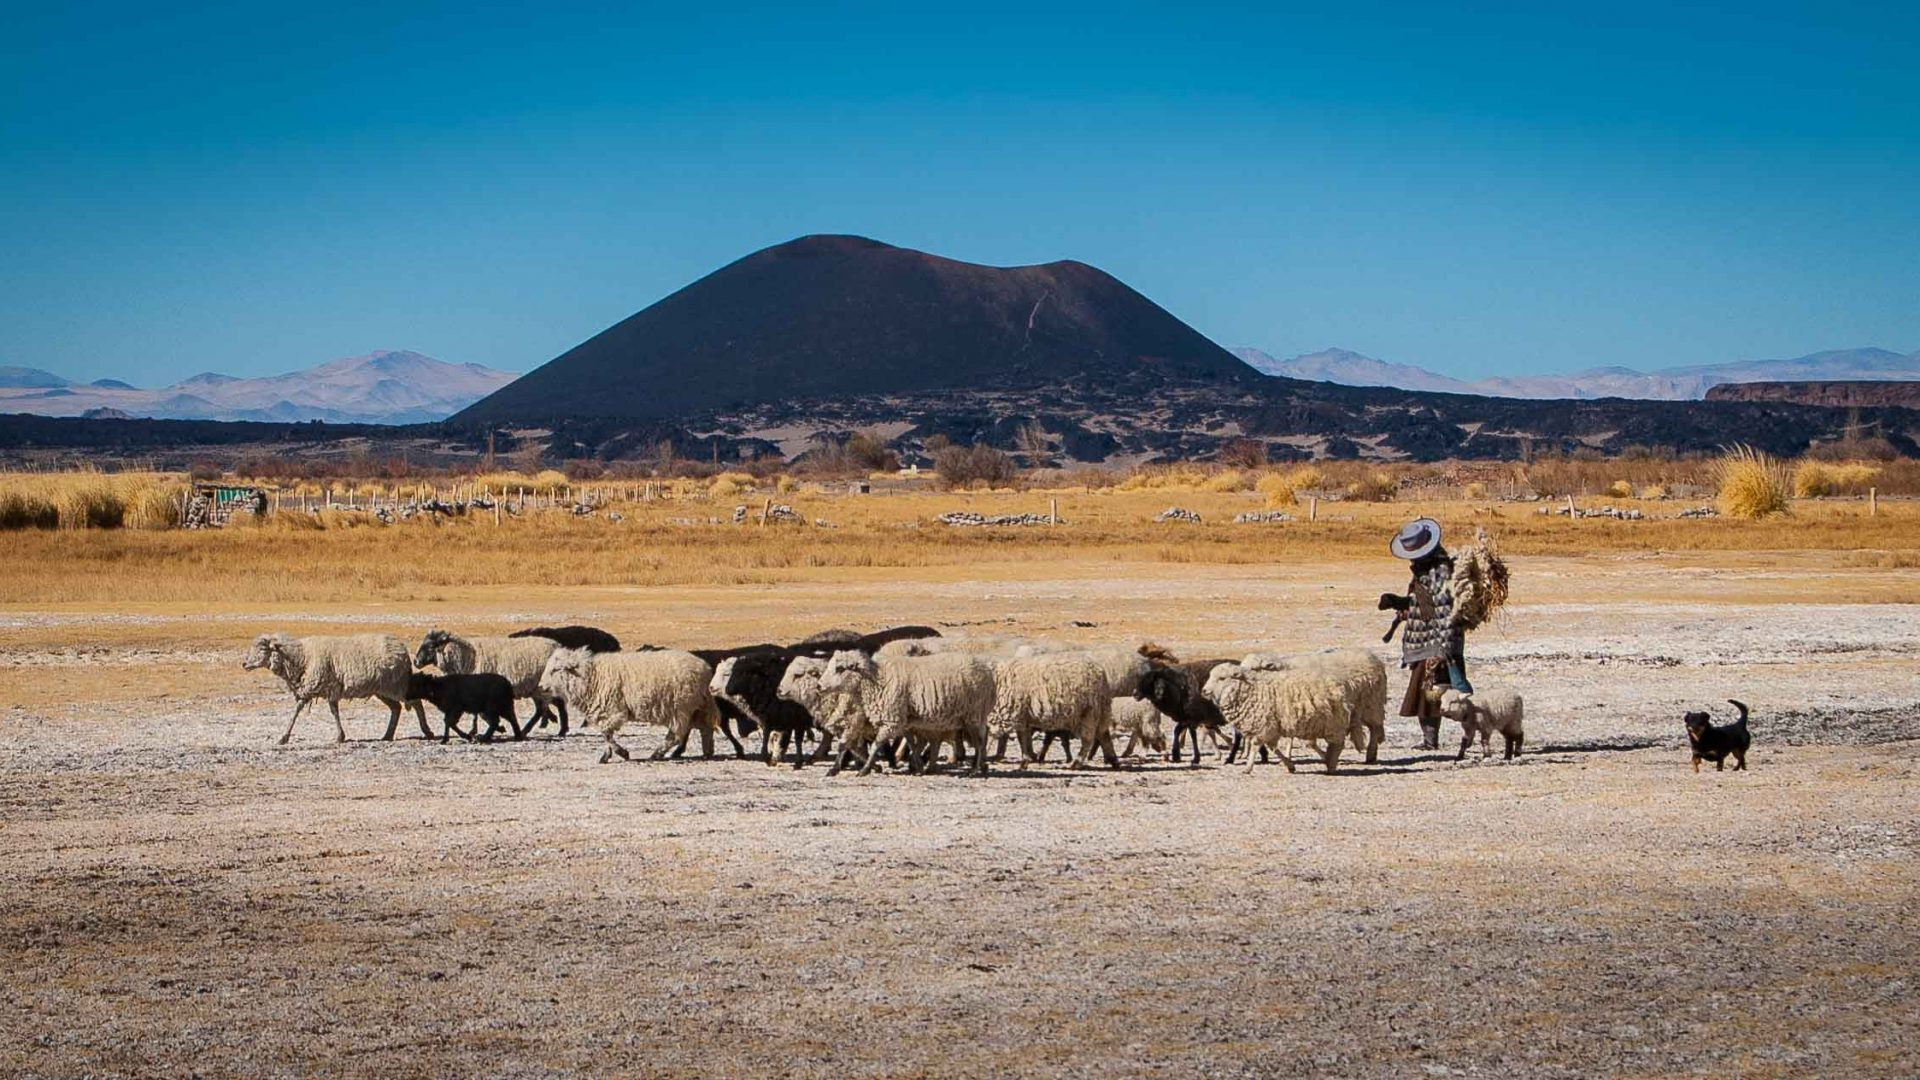 A woman herds her sheep across the barren landscape in Salta, Argentina.